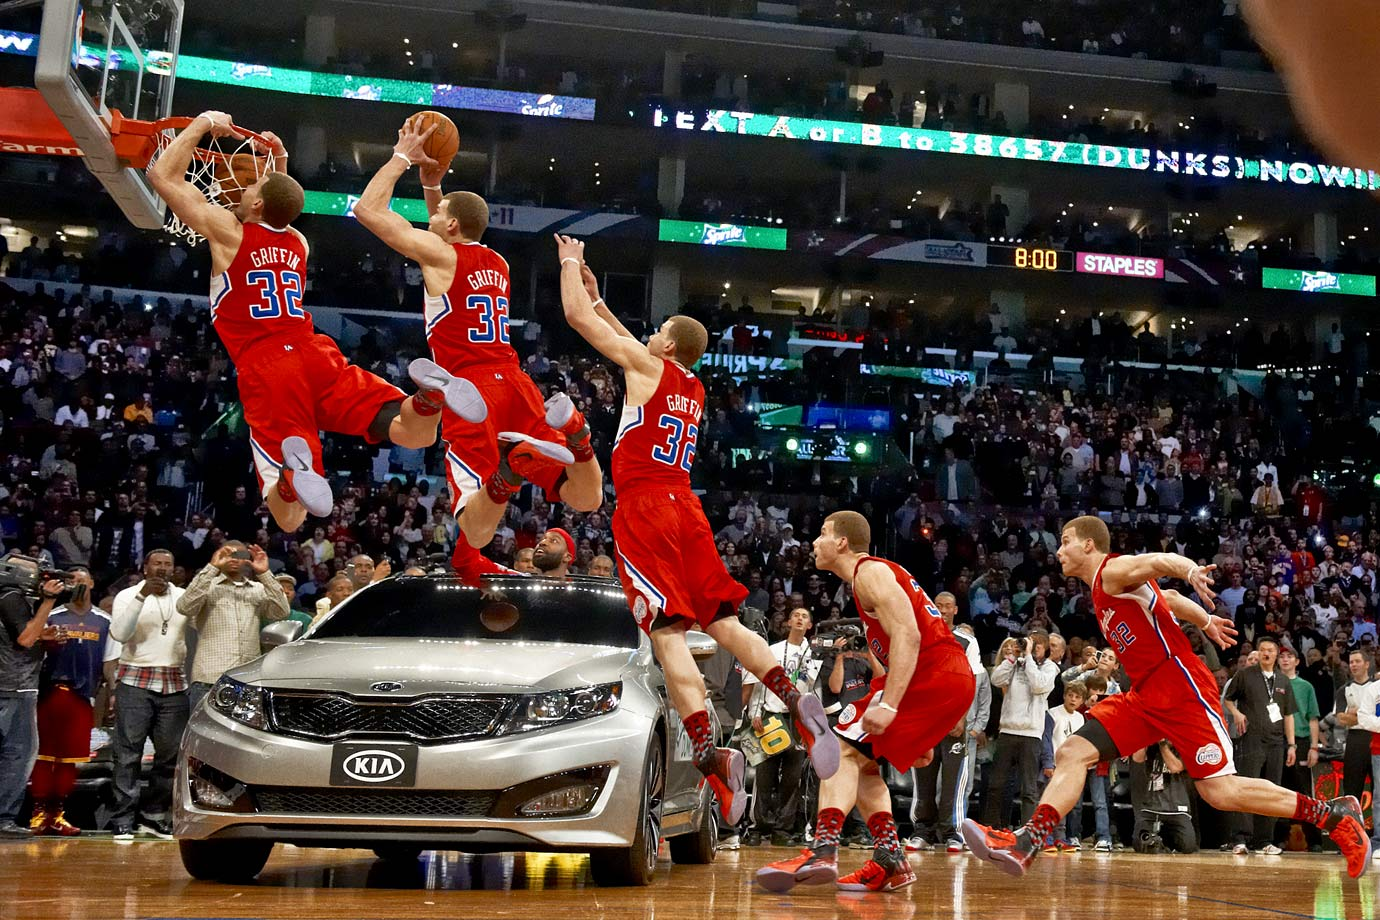 You know this Blake Griffin dunk well, but have you seen the composite of every frame? Pretty great, right?